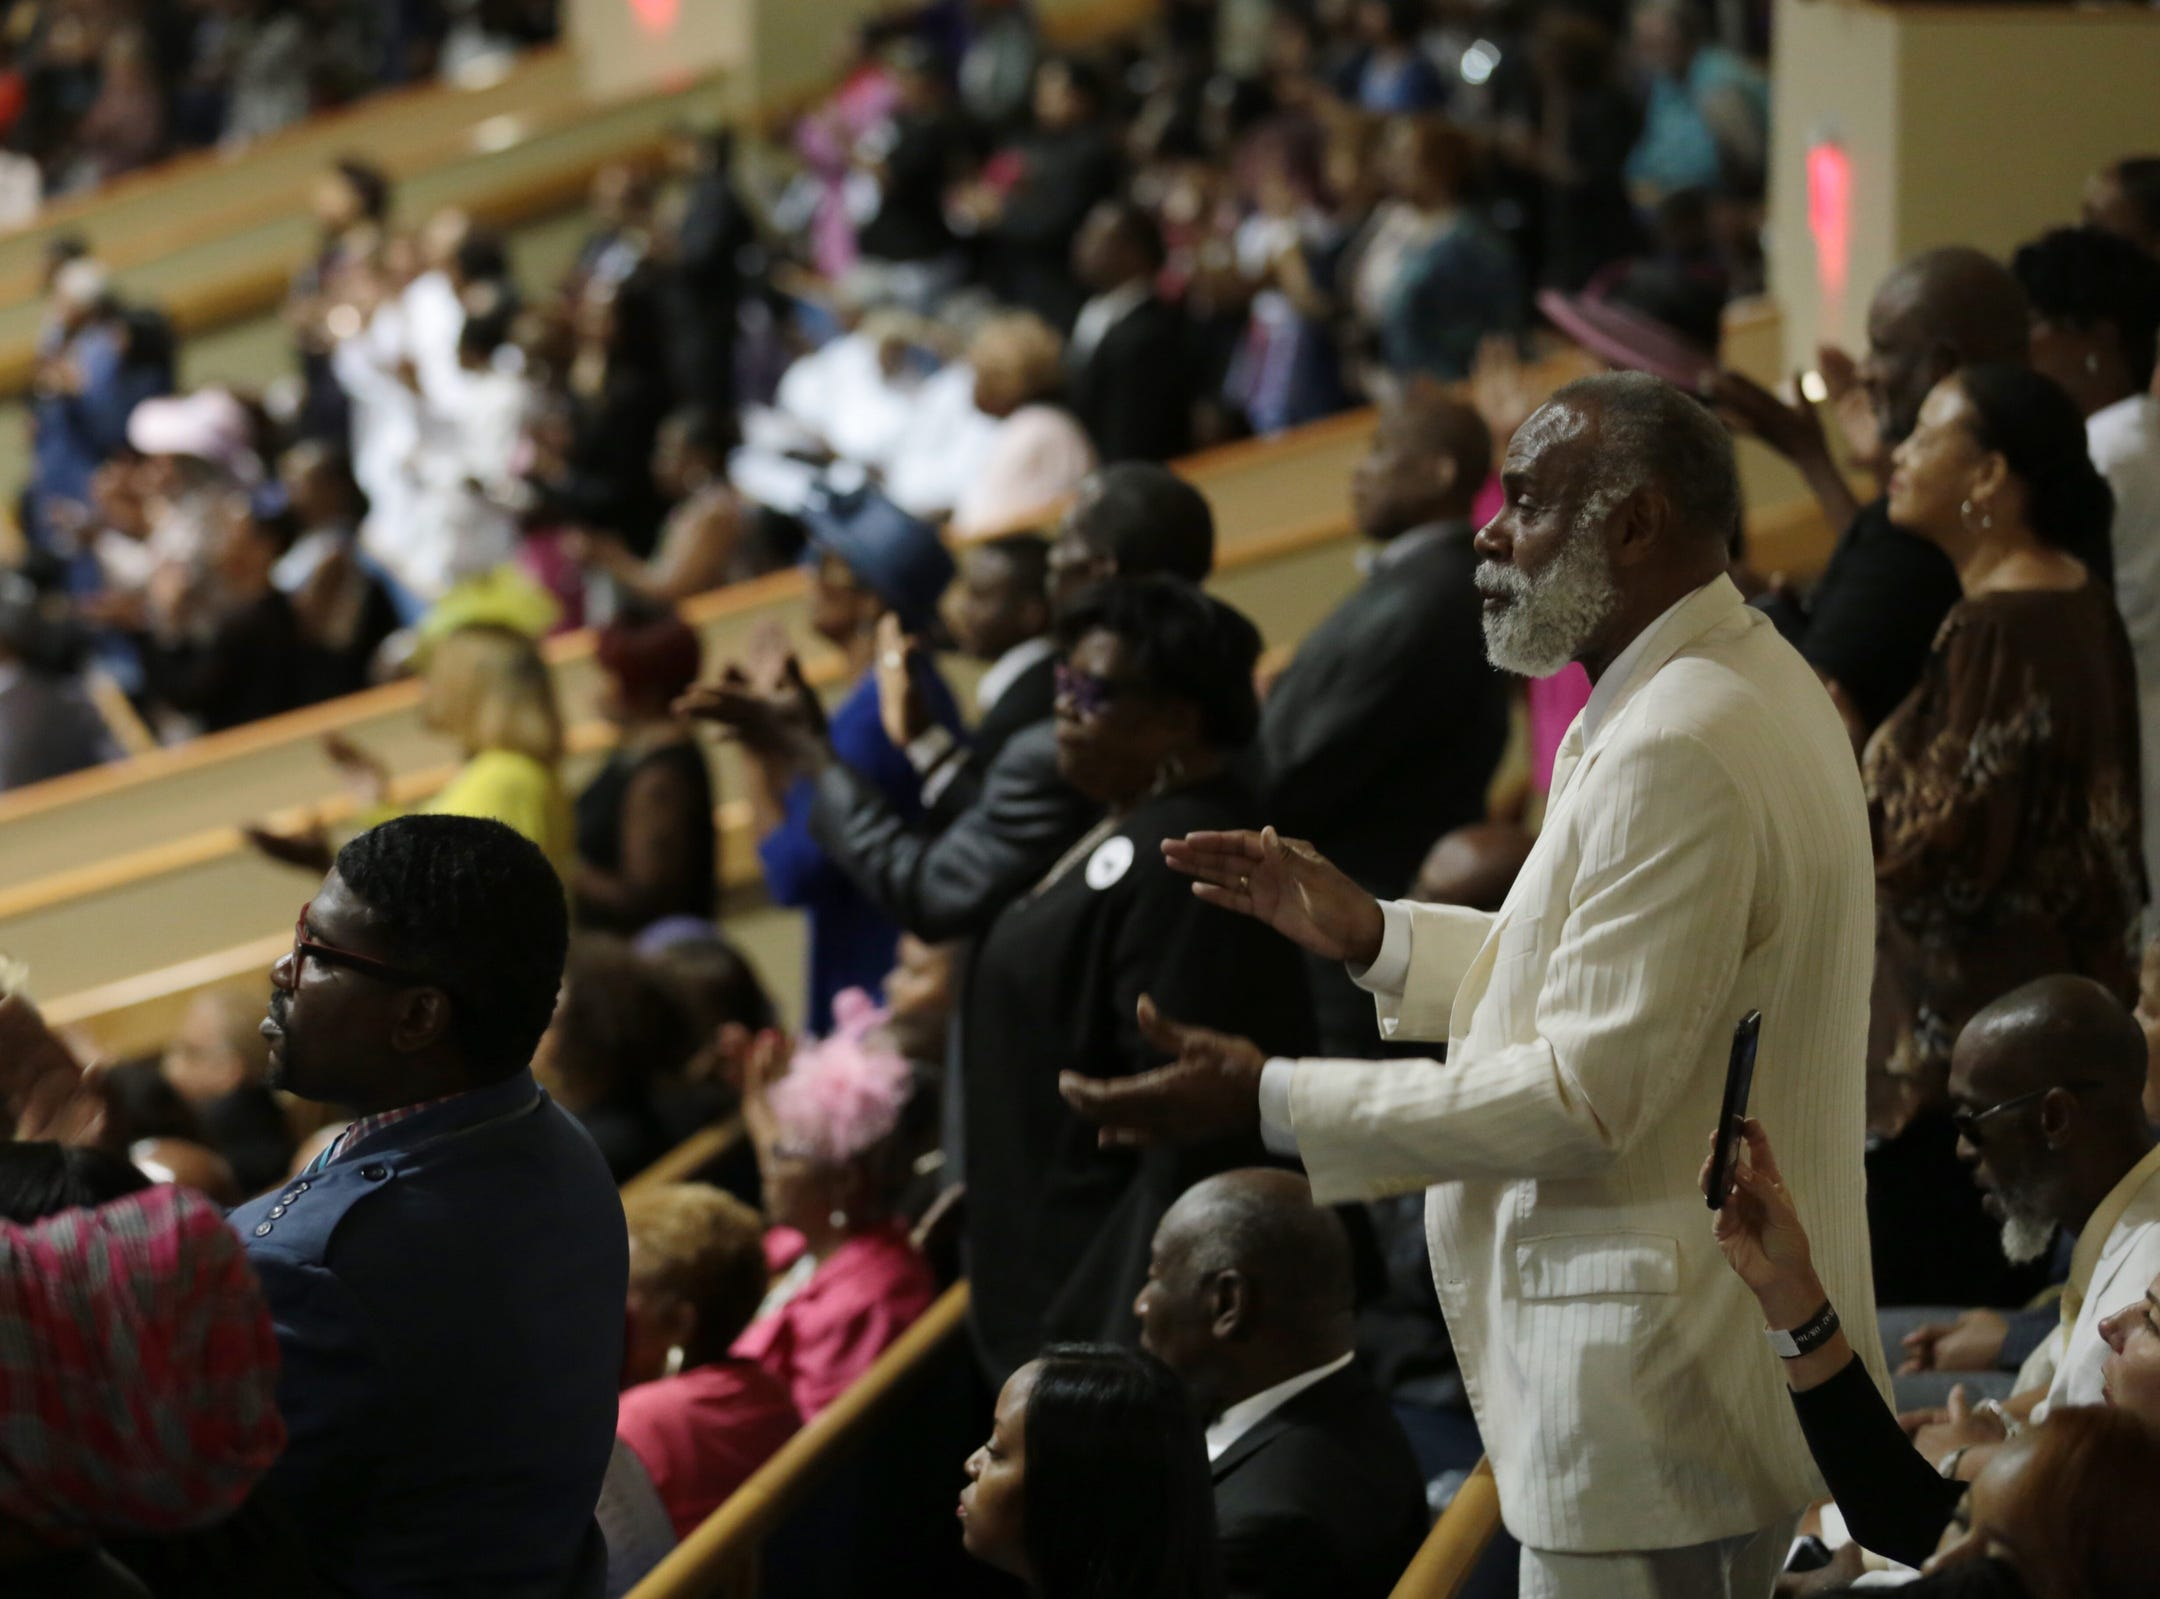 Crowd claps along to music during the funeral for the late Aretha Franklin at Greater Grace Temple in Detroit on Friday, August 31, 2018.